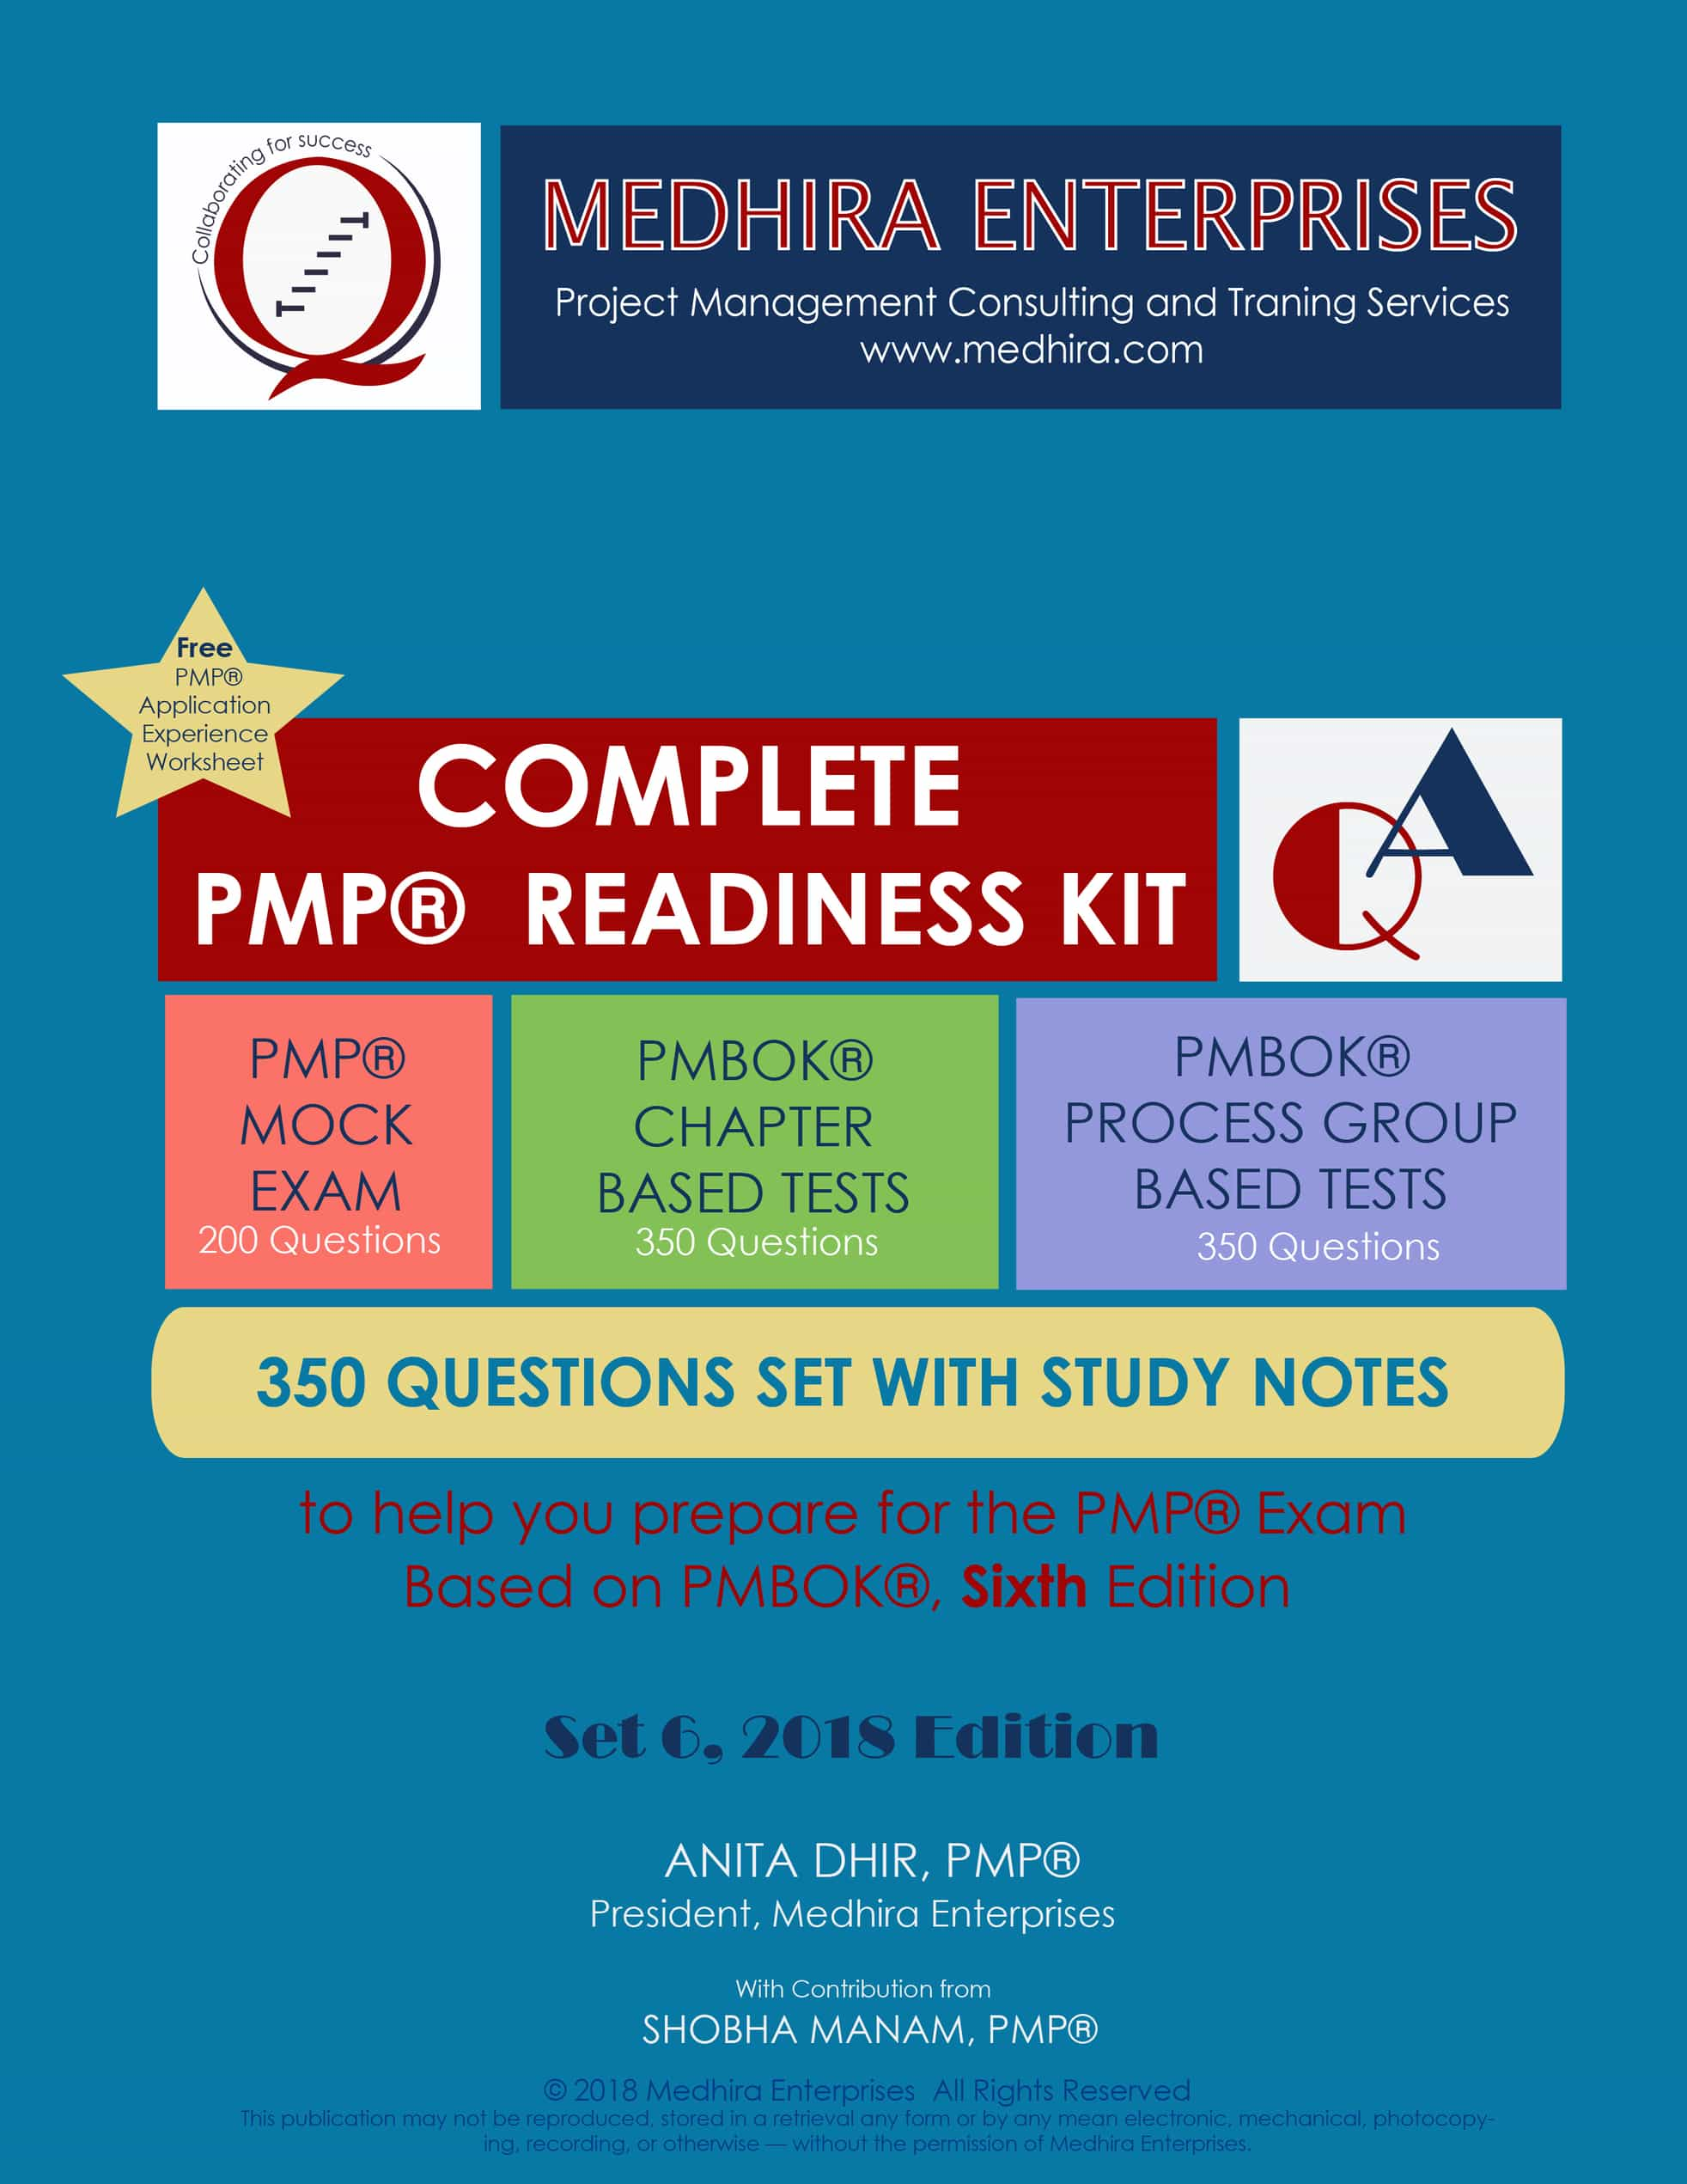 Get organized notes to help you understand the PMBOK and succeed in your PMP test